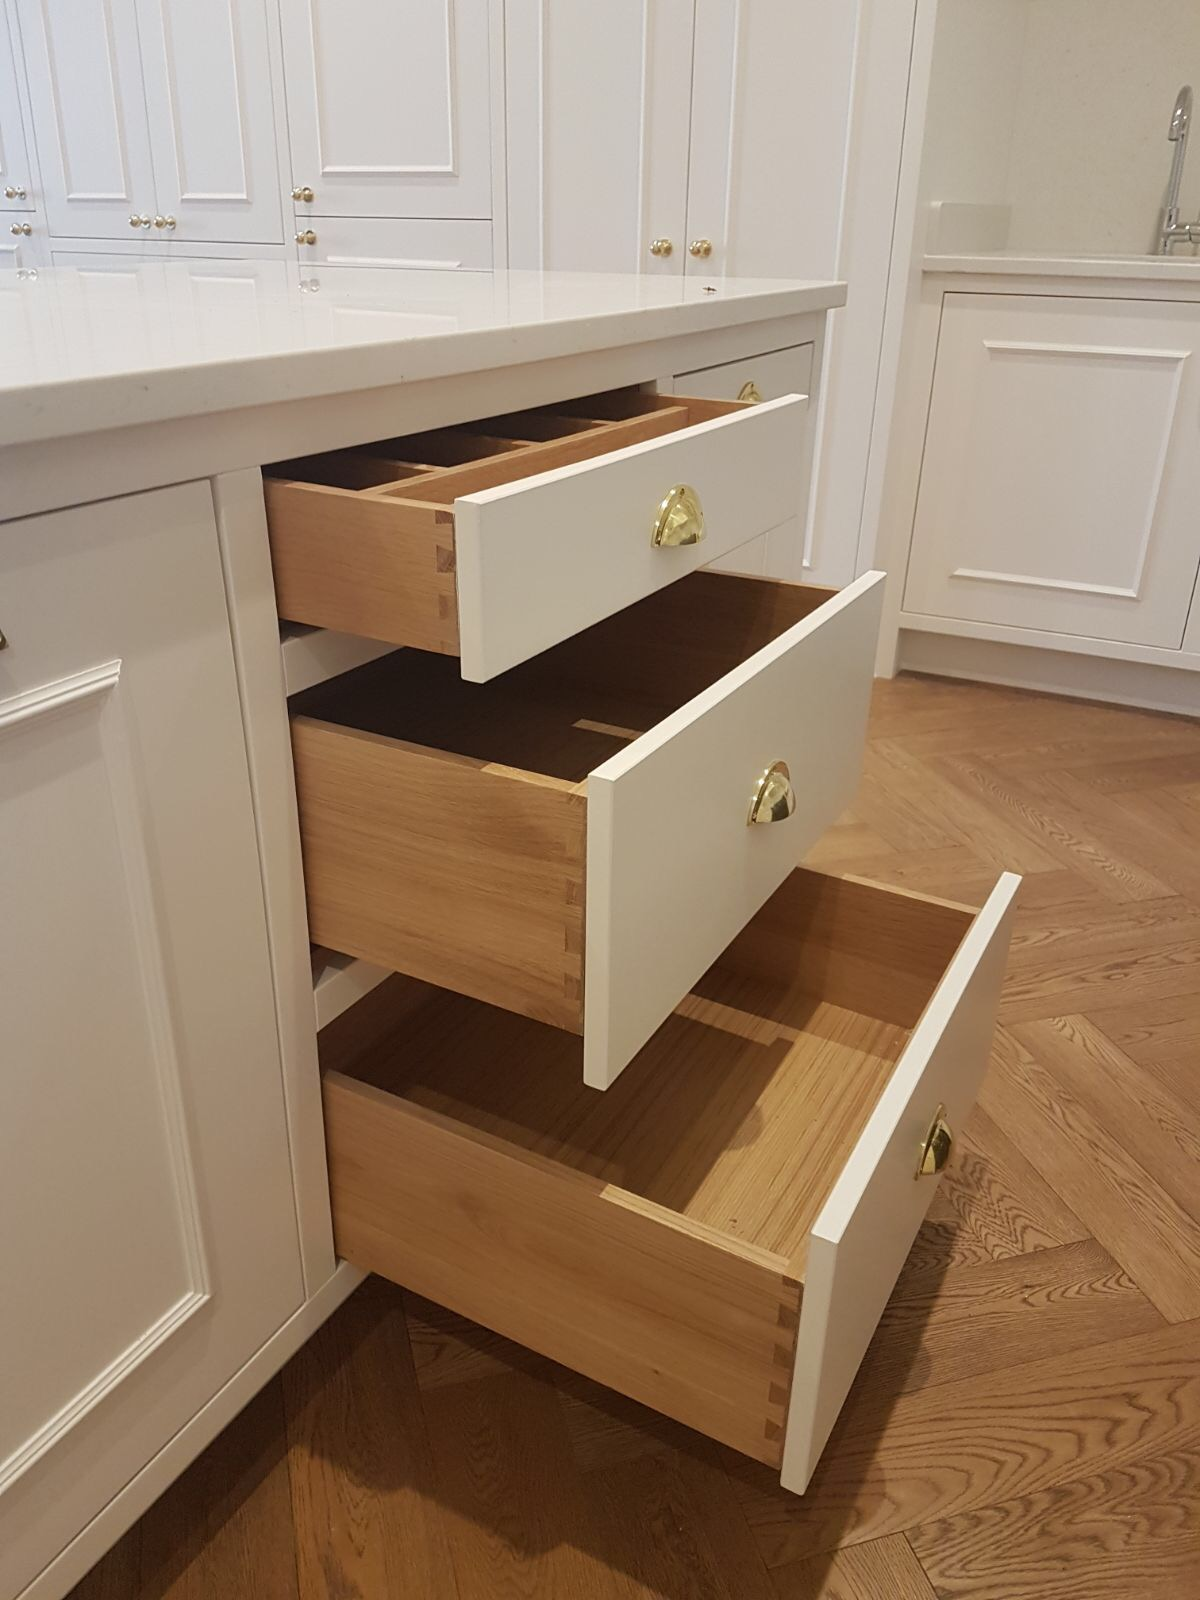 Hand-crafted drawers